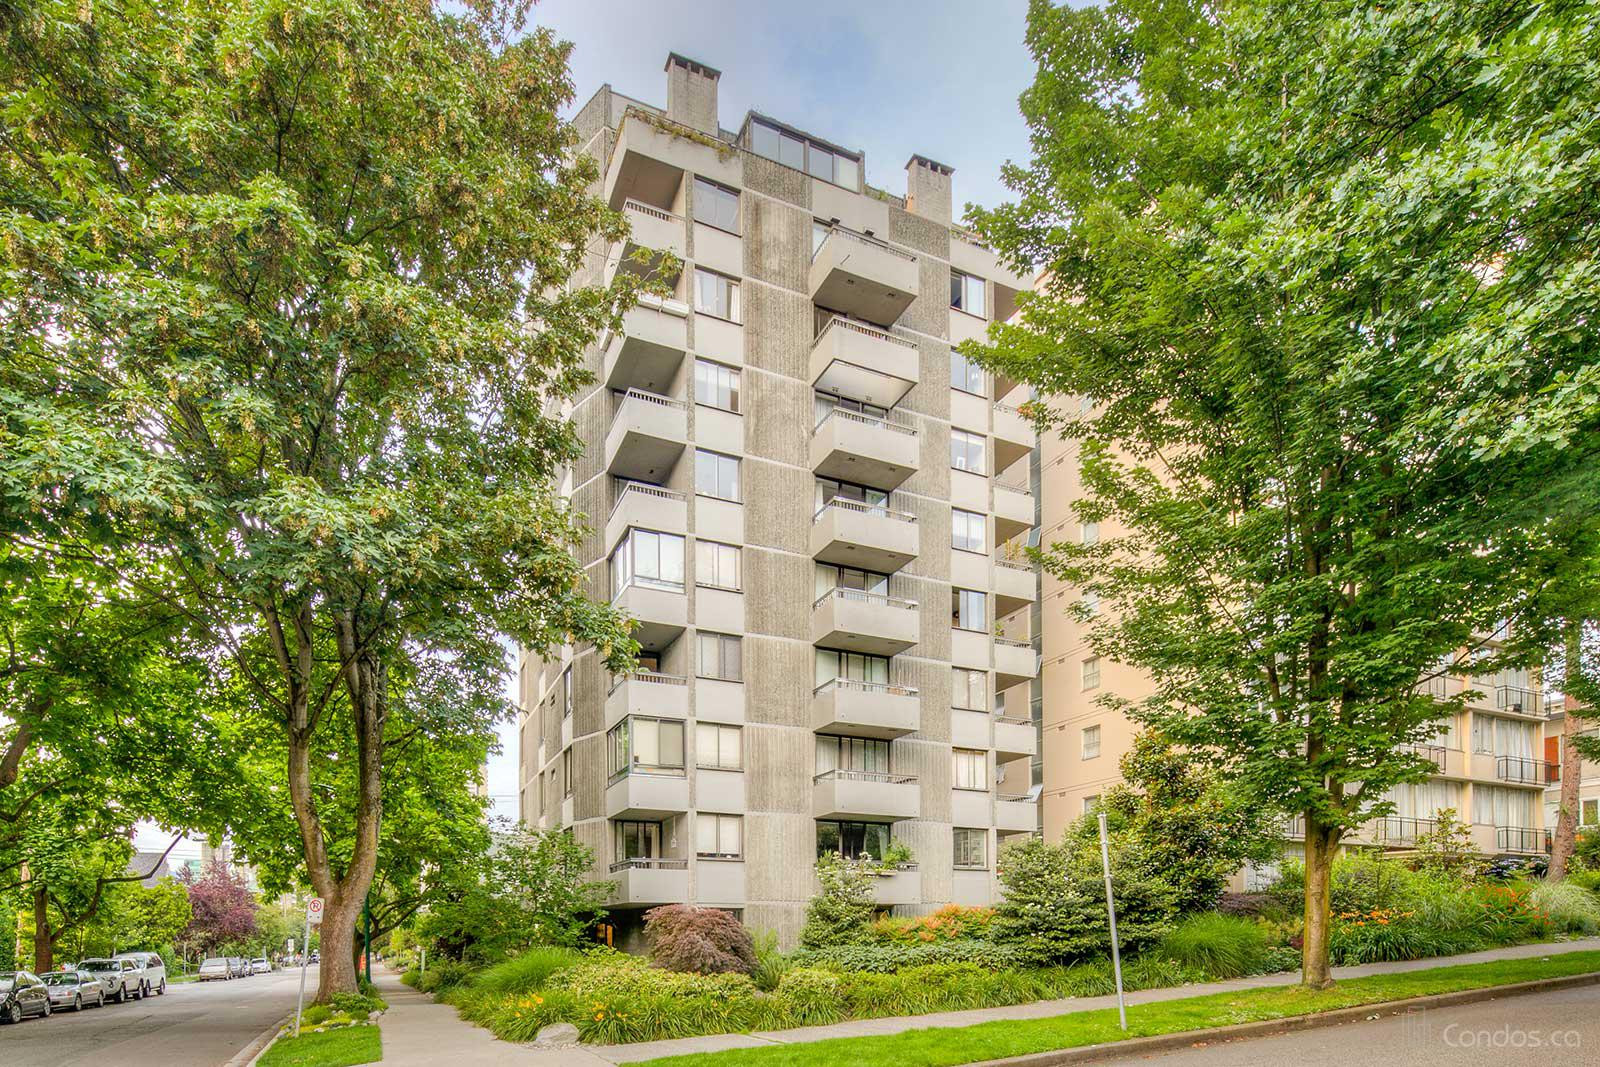 The Chartwell at 1108 Nicola St, Vancouver 1